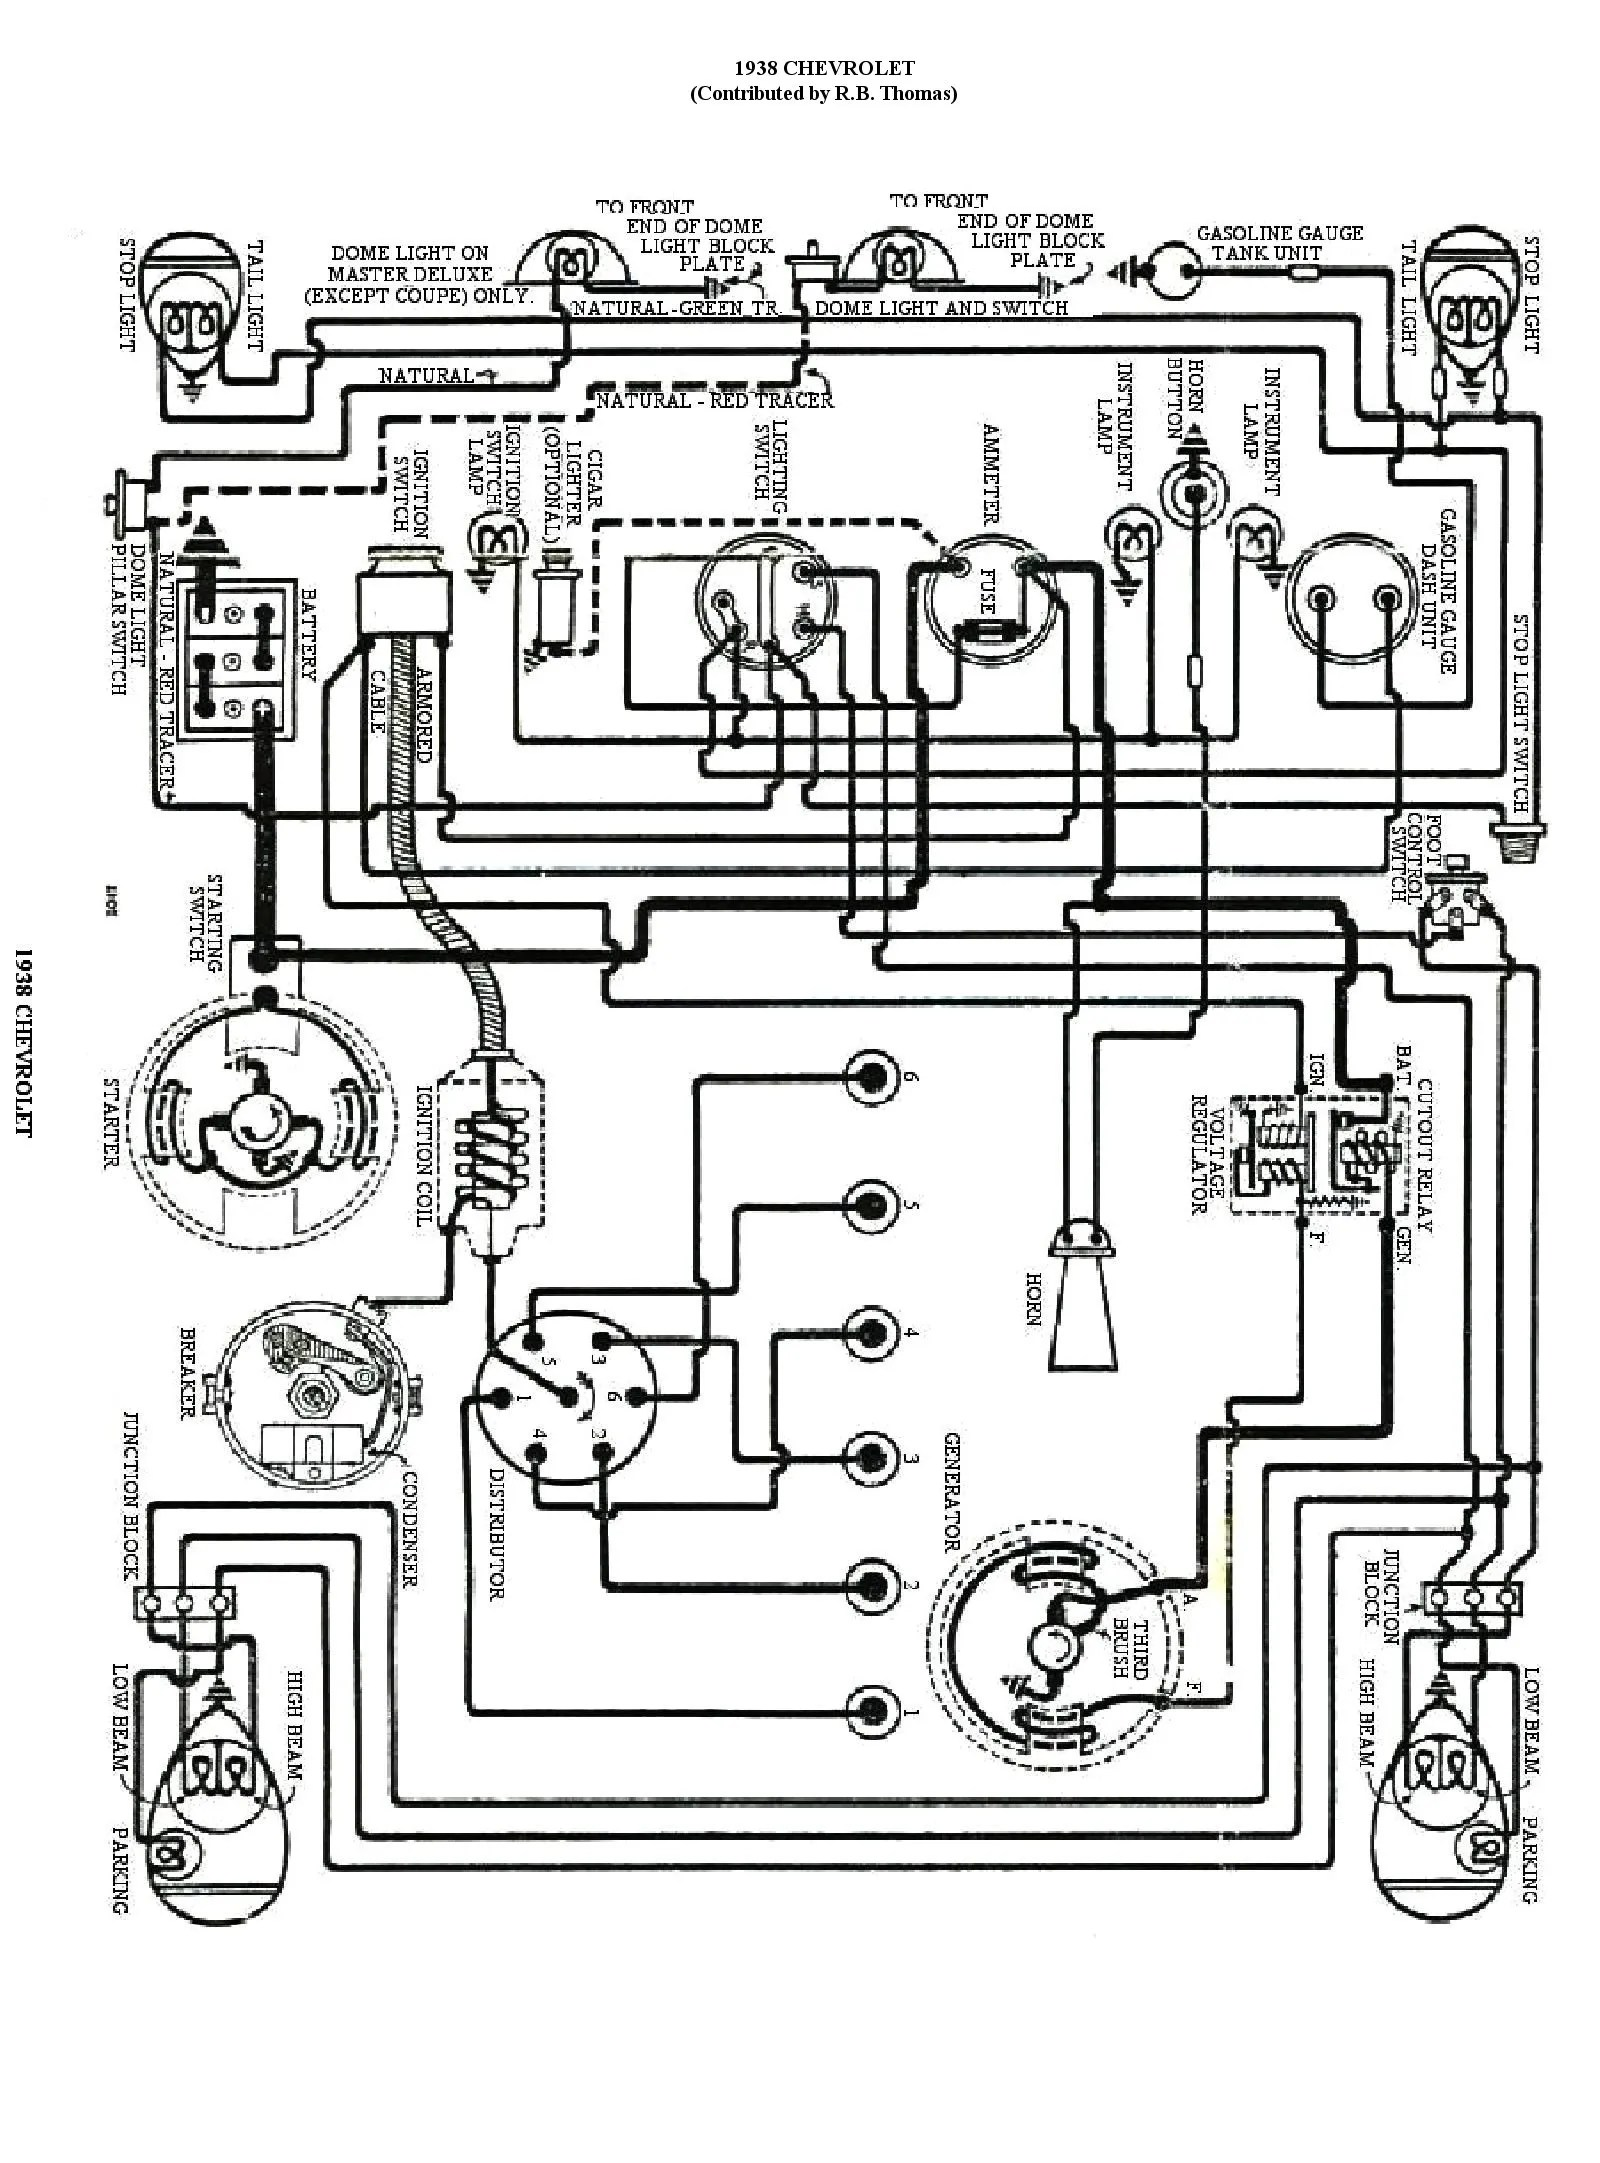 hight resolution of chevy wiring diagrams wiring 1938 1938 car wiring 1939 1939 car wiring 1939 truck wiring